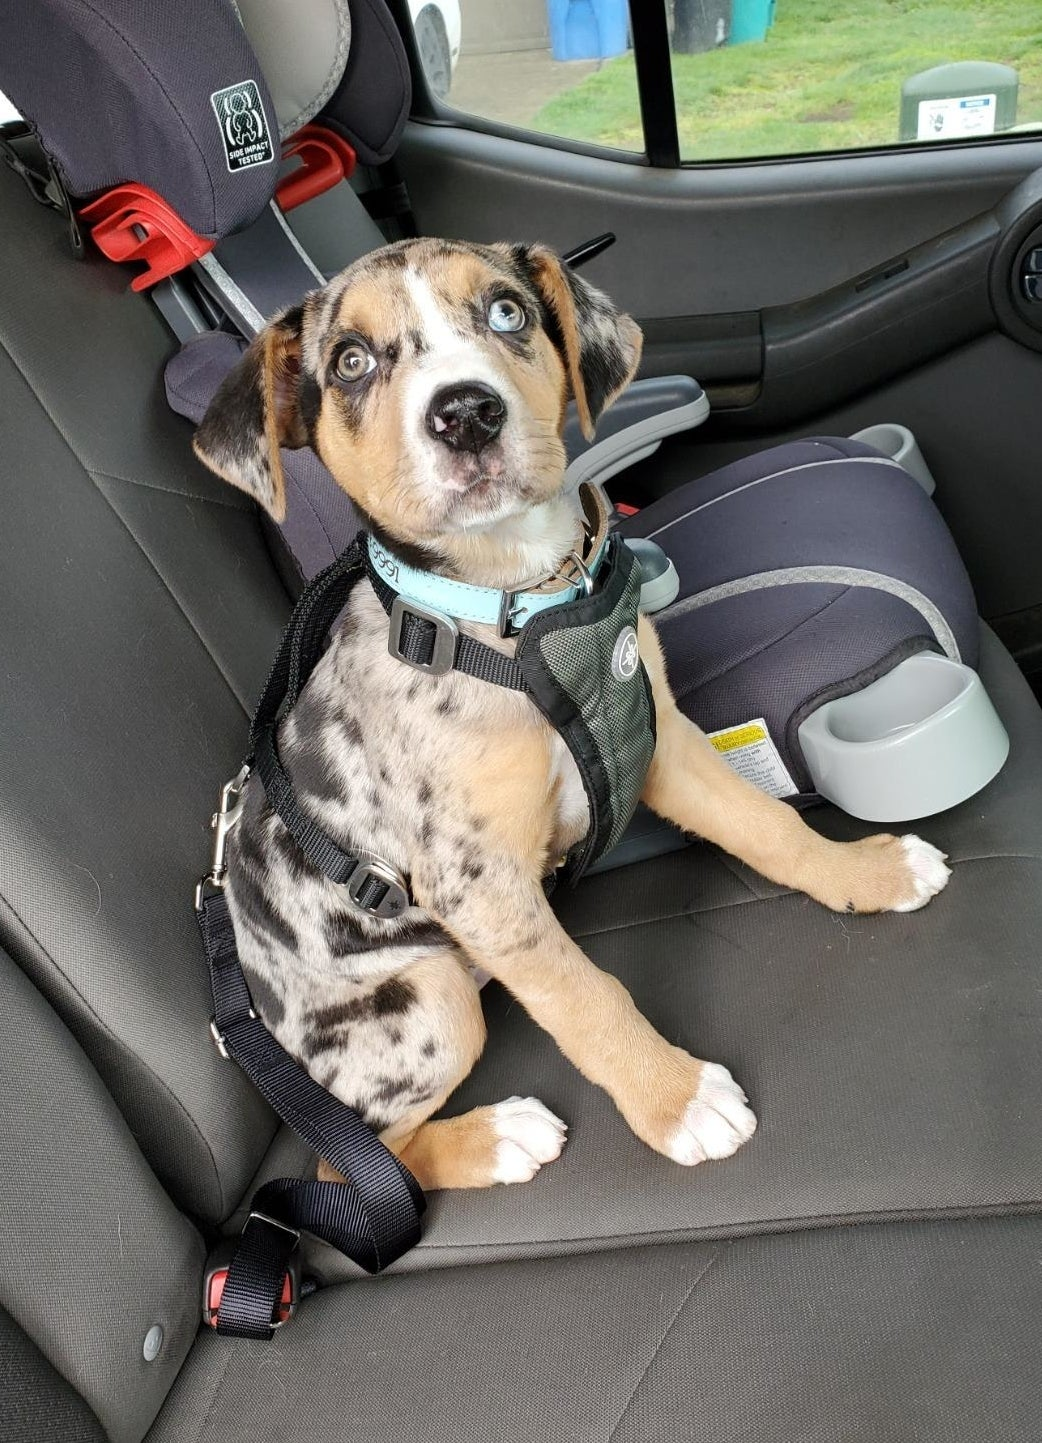 Reviewer pic of their puppy in the backseat of the car with the puppy seat bleted into the car